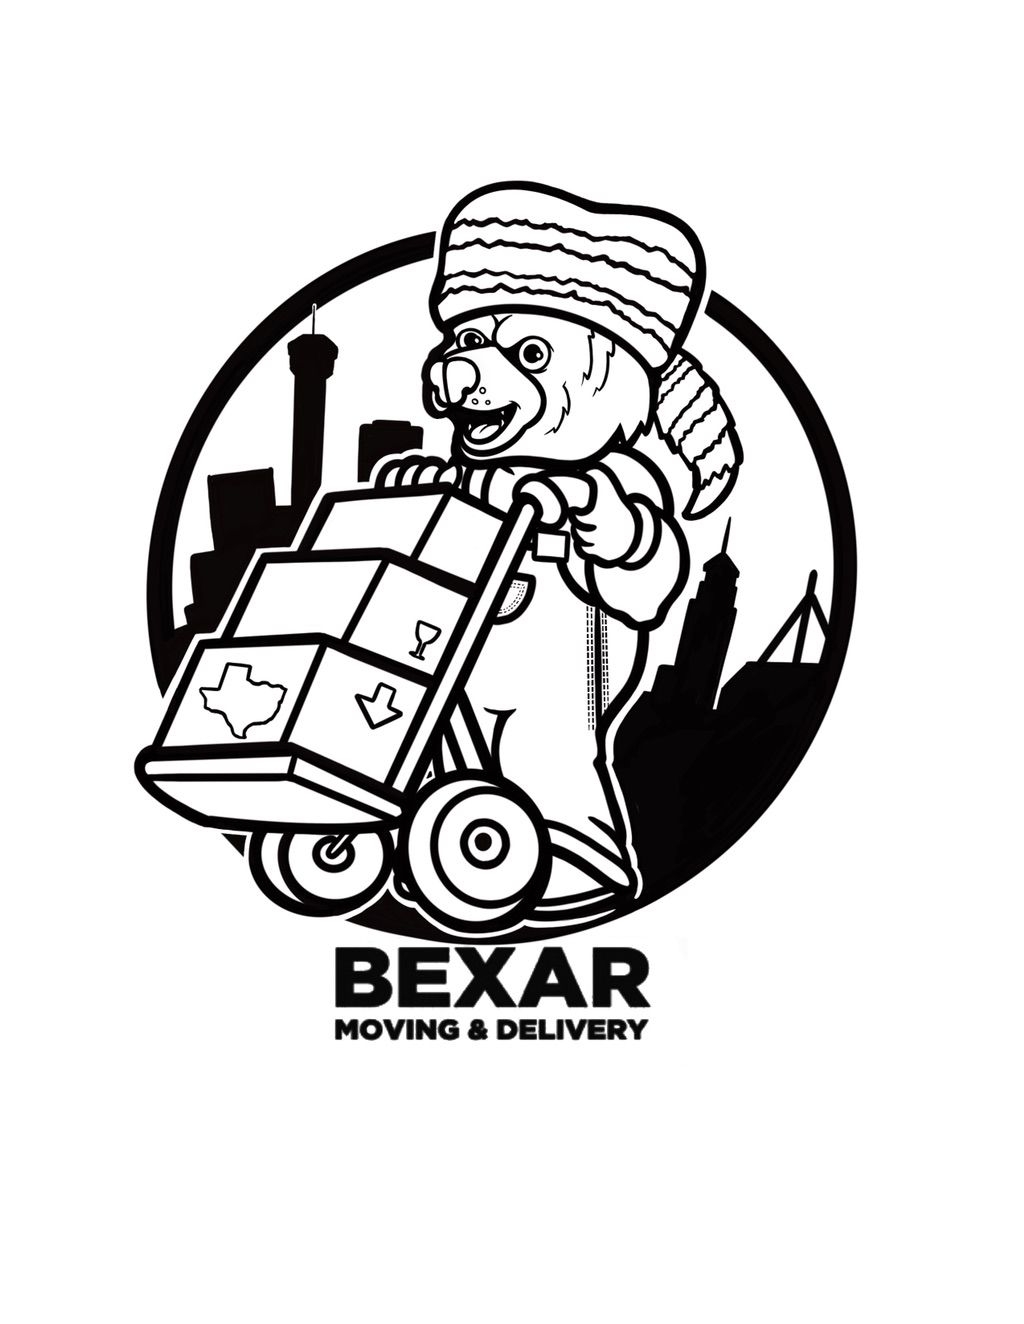 Bexar Moving & Delivery